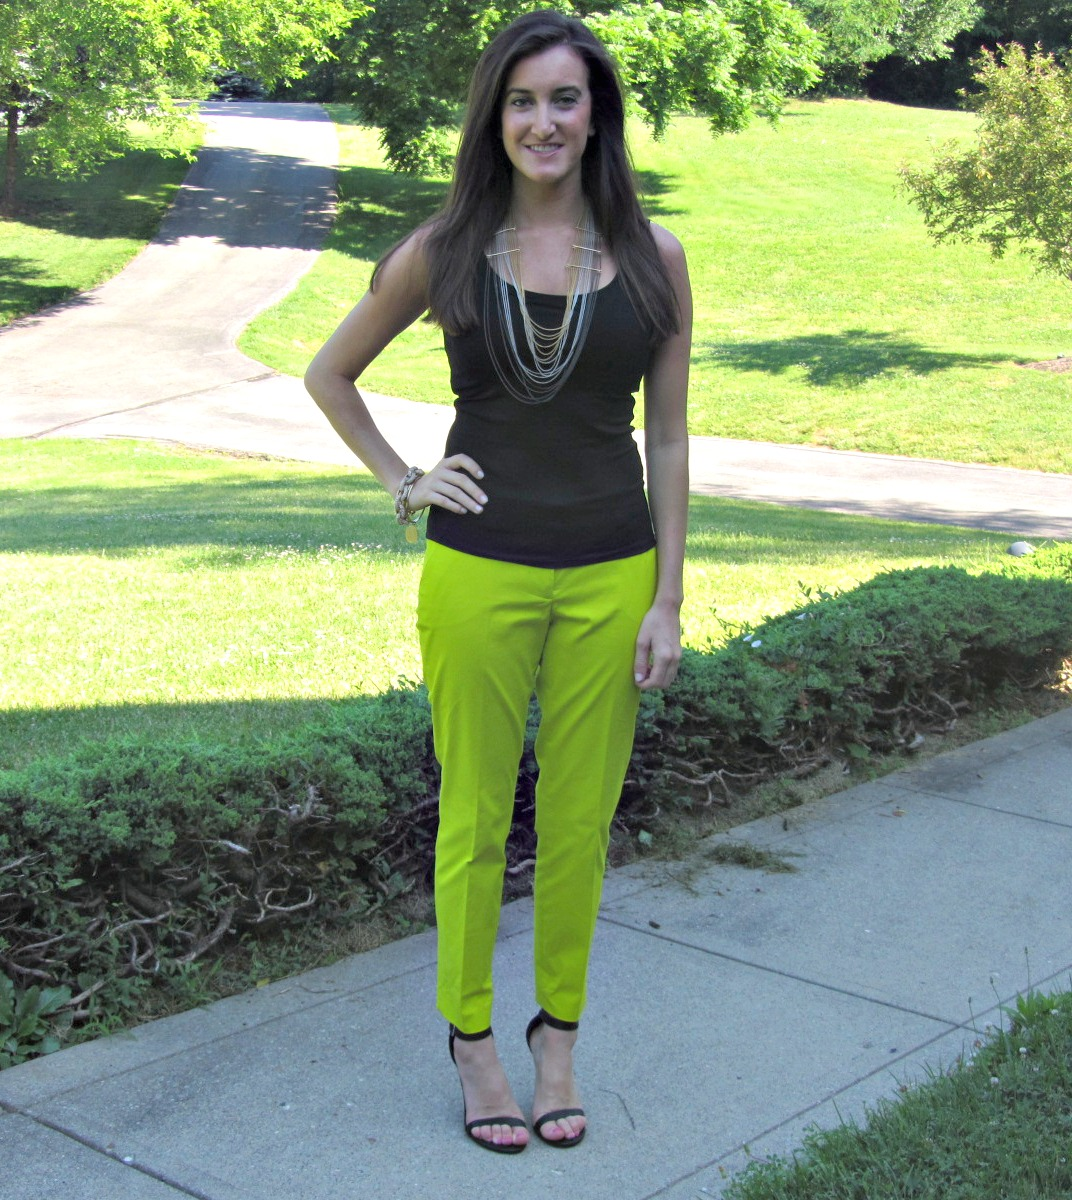 J.Crew Green Cafe Capri Pants, White House Black Market Cami, BCBG Chain Necklace